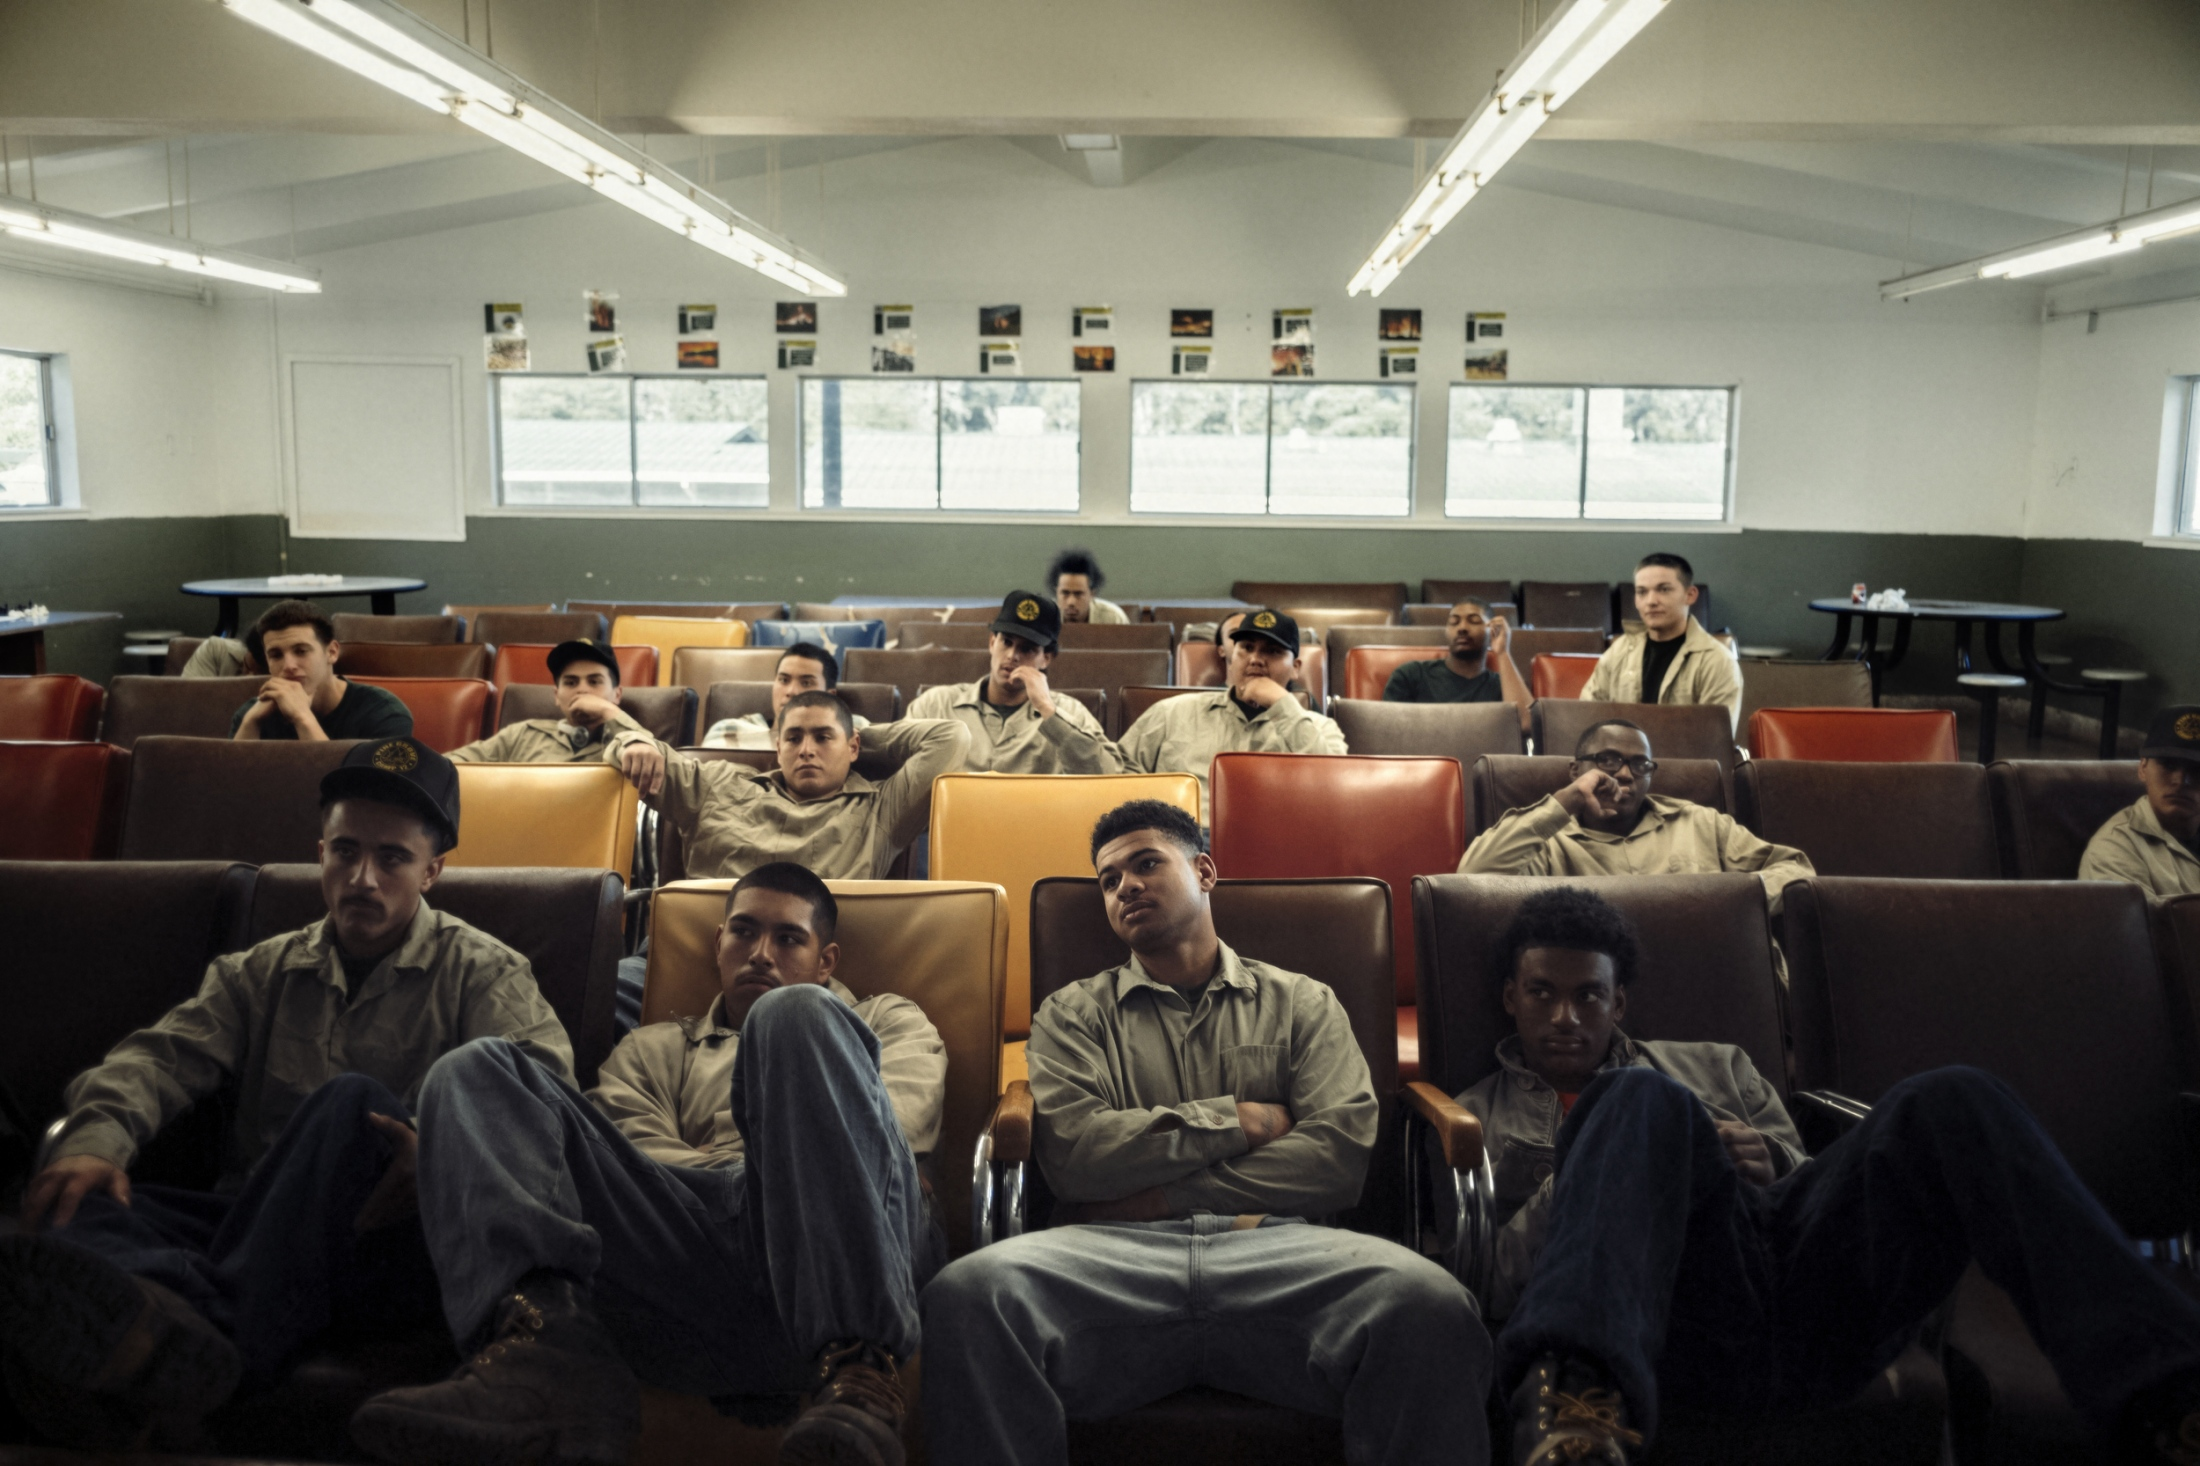 "The few remaining Inmates at Pine Grove sit for a meeting with staff about plans going forward at the camp, after a large violent riot broke out between different groups at the camp.  Though rare at Pine Grove, tensions can rise to a boiling point leading to violent confrontation.  Prior to the riot, the facility had approximately 90 inmates, all but those in the photograph were ""rolled up"" back to higher level security facilities following the riot and pending review of their involvement in the incident."